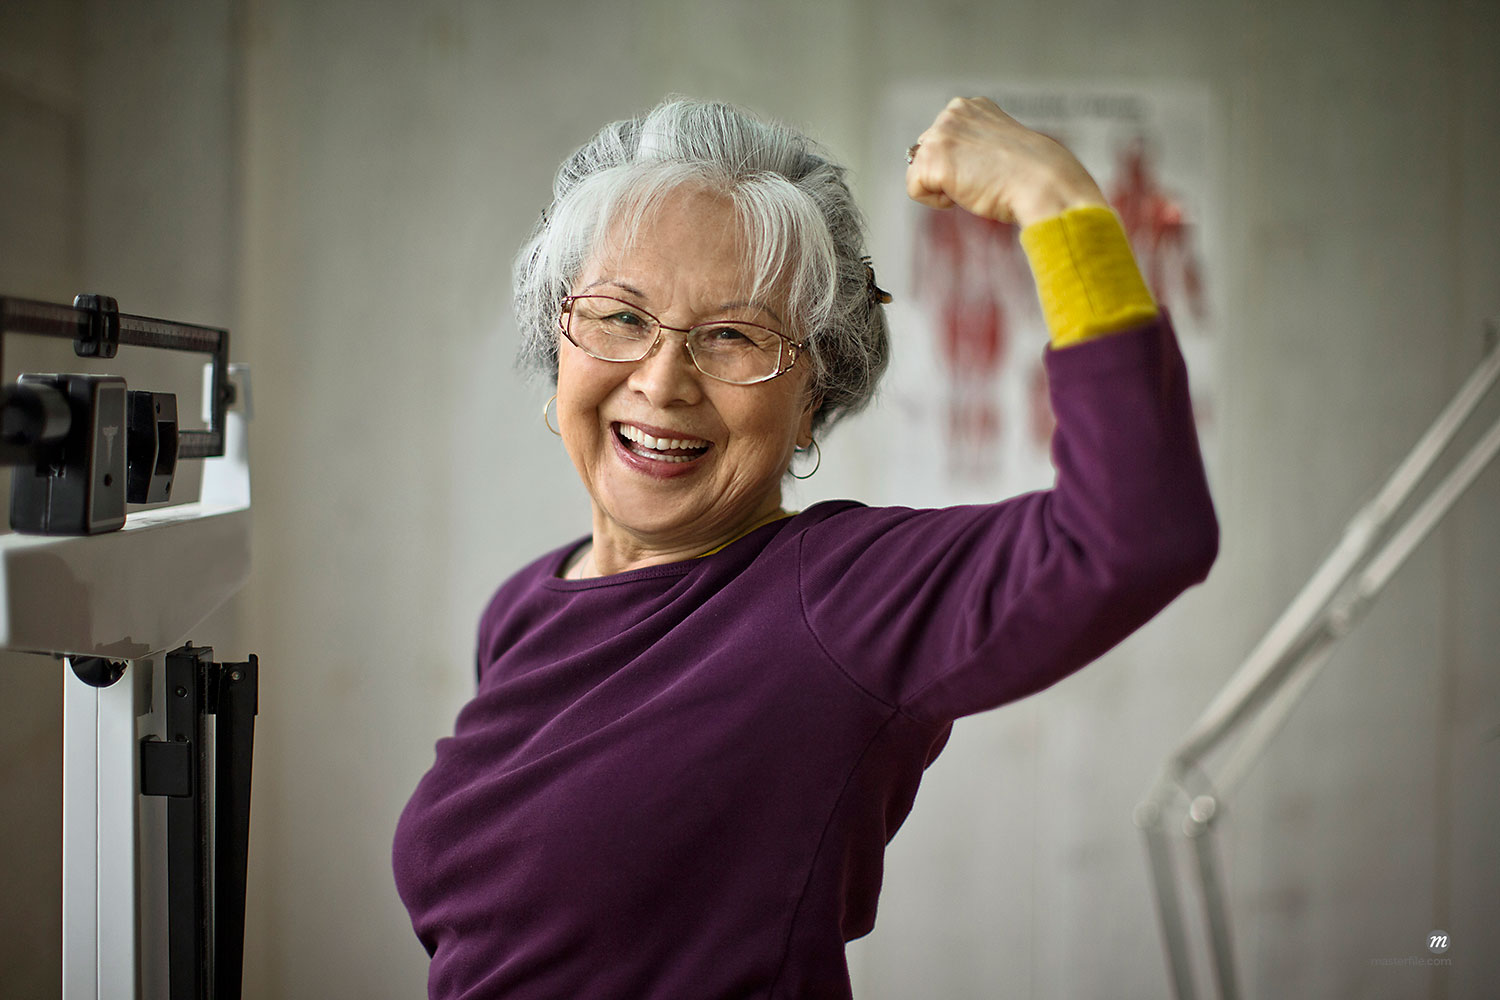 Smiling senior woman flexing her muscles while standing on scales  © Masterfile